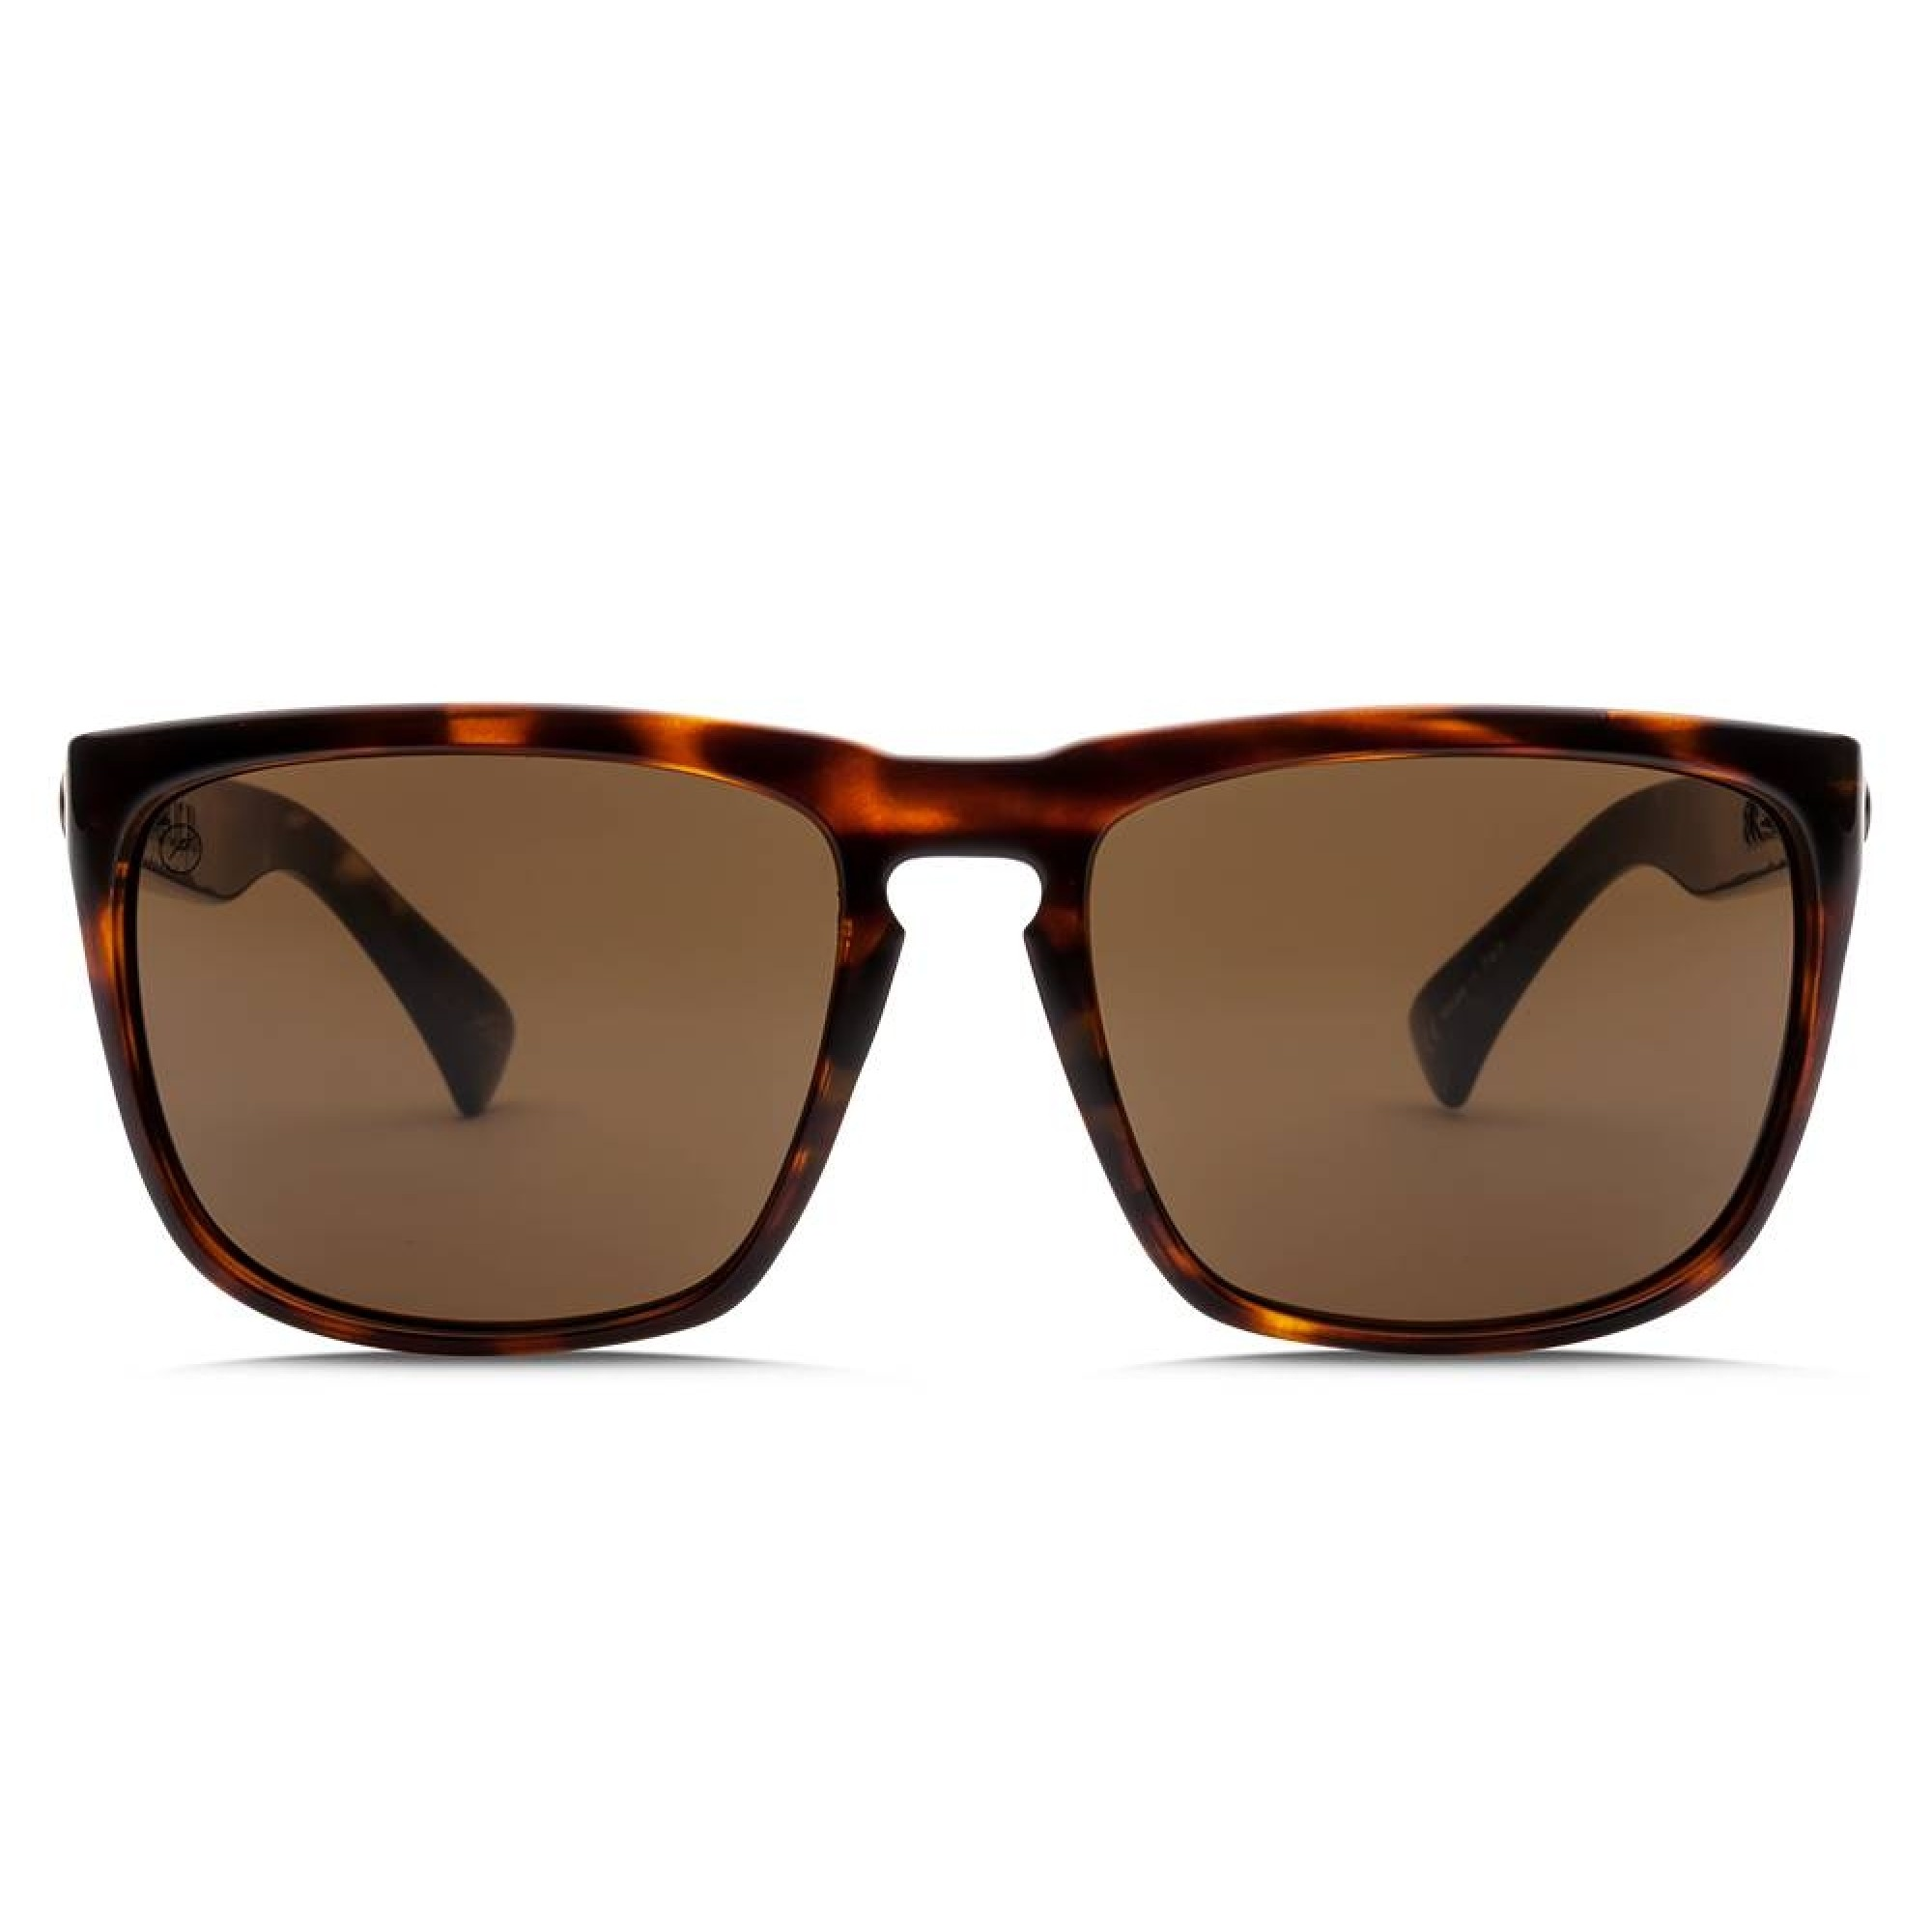 cb16bf129a1 Venue Store ELECTRIC Swingarm XL Sunglasses - Matte Tort OHM Bronze Free  Delivery Over  100